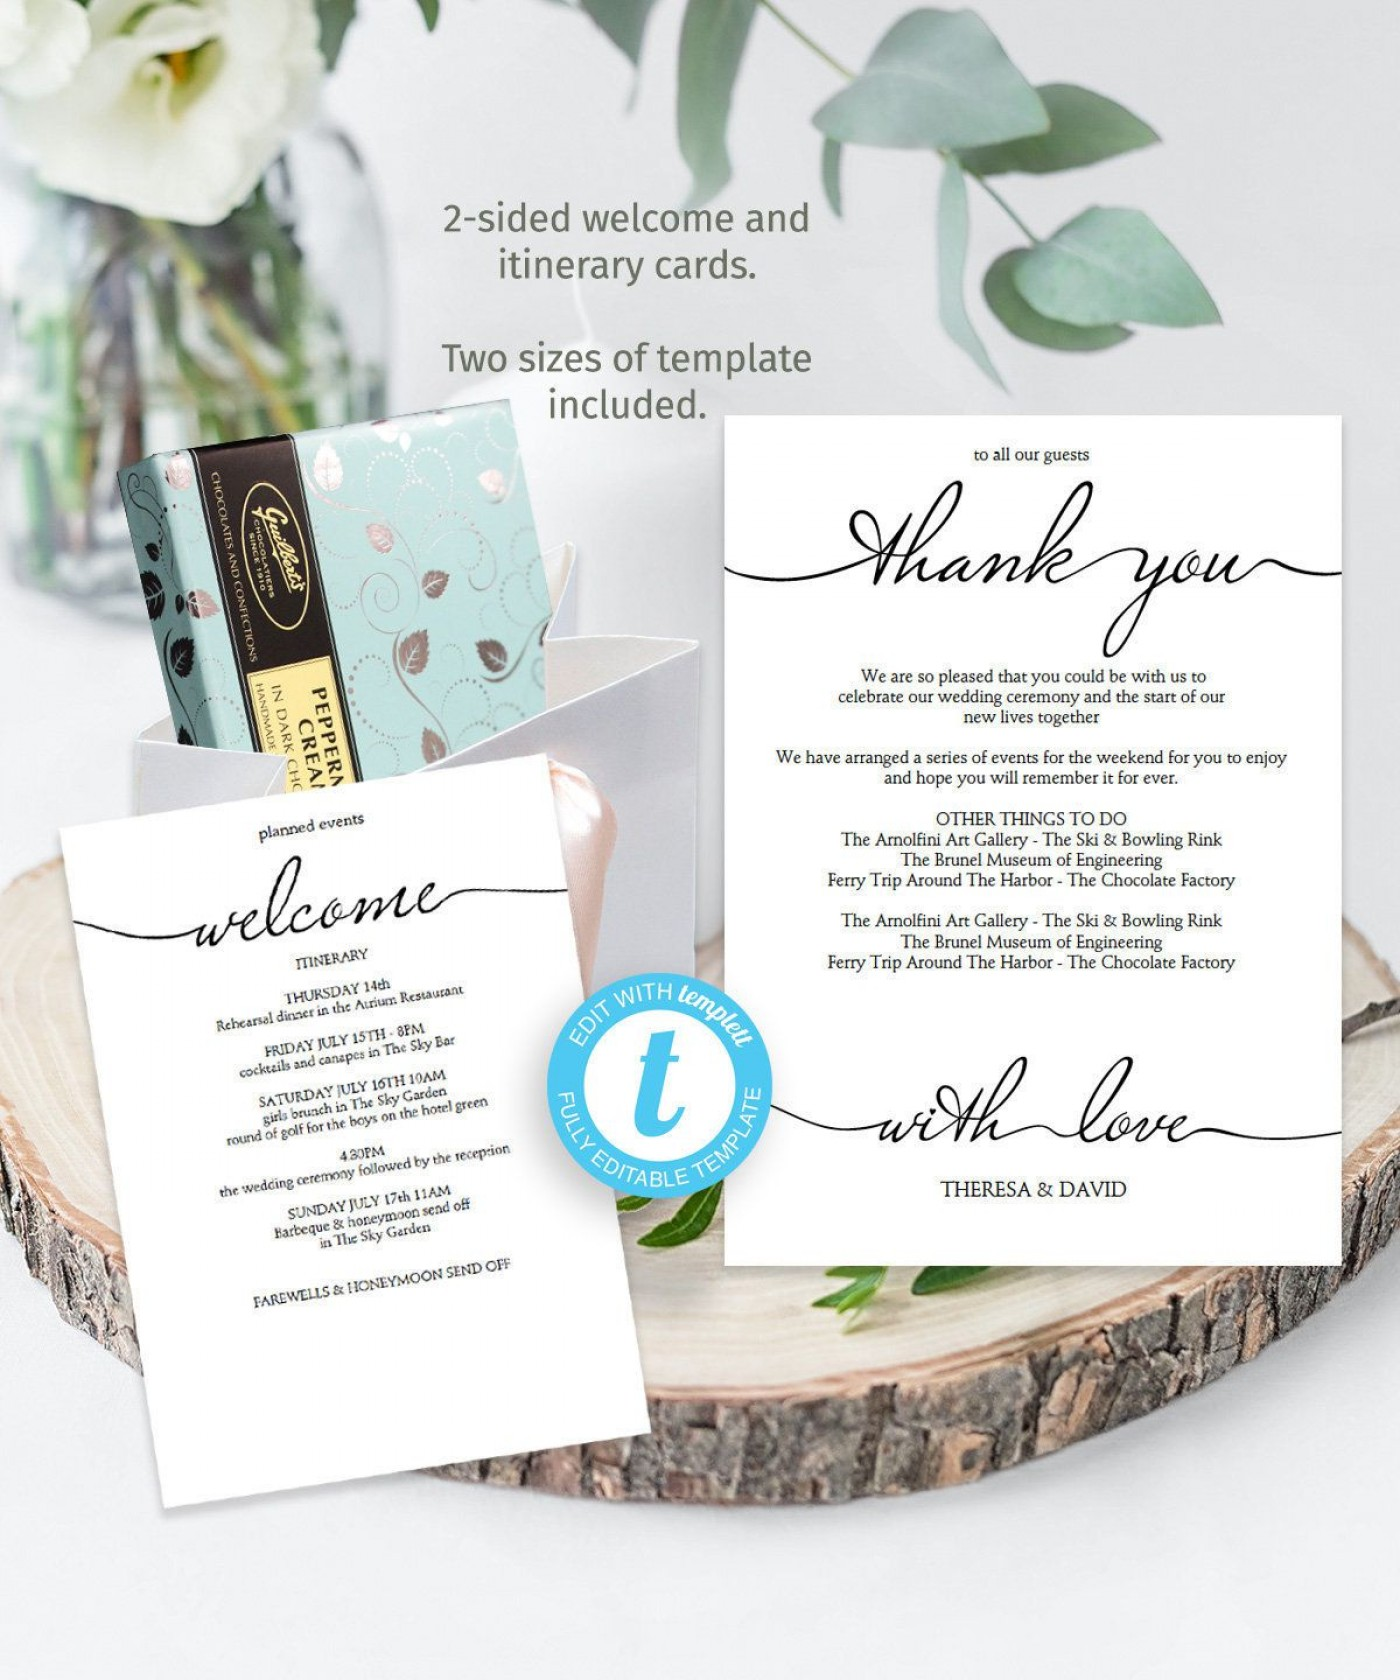 002 Striking Wedding Weekend Itinerary Template Photo  Day Timeline Word Sample1400